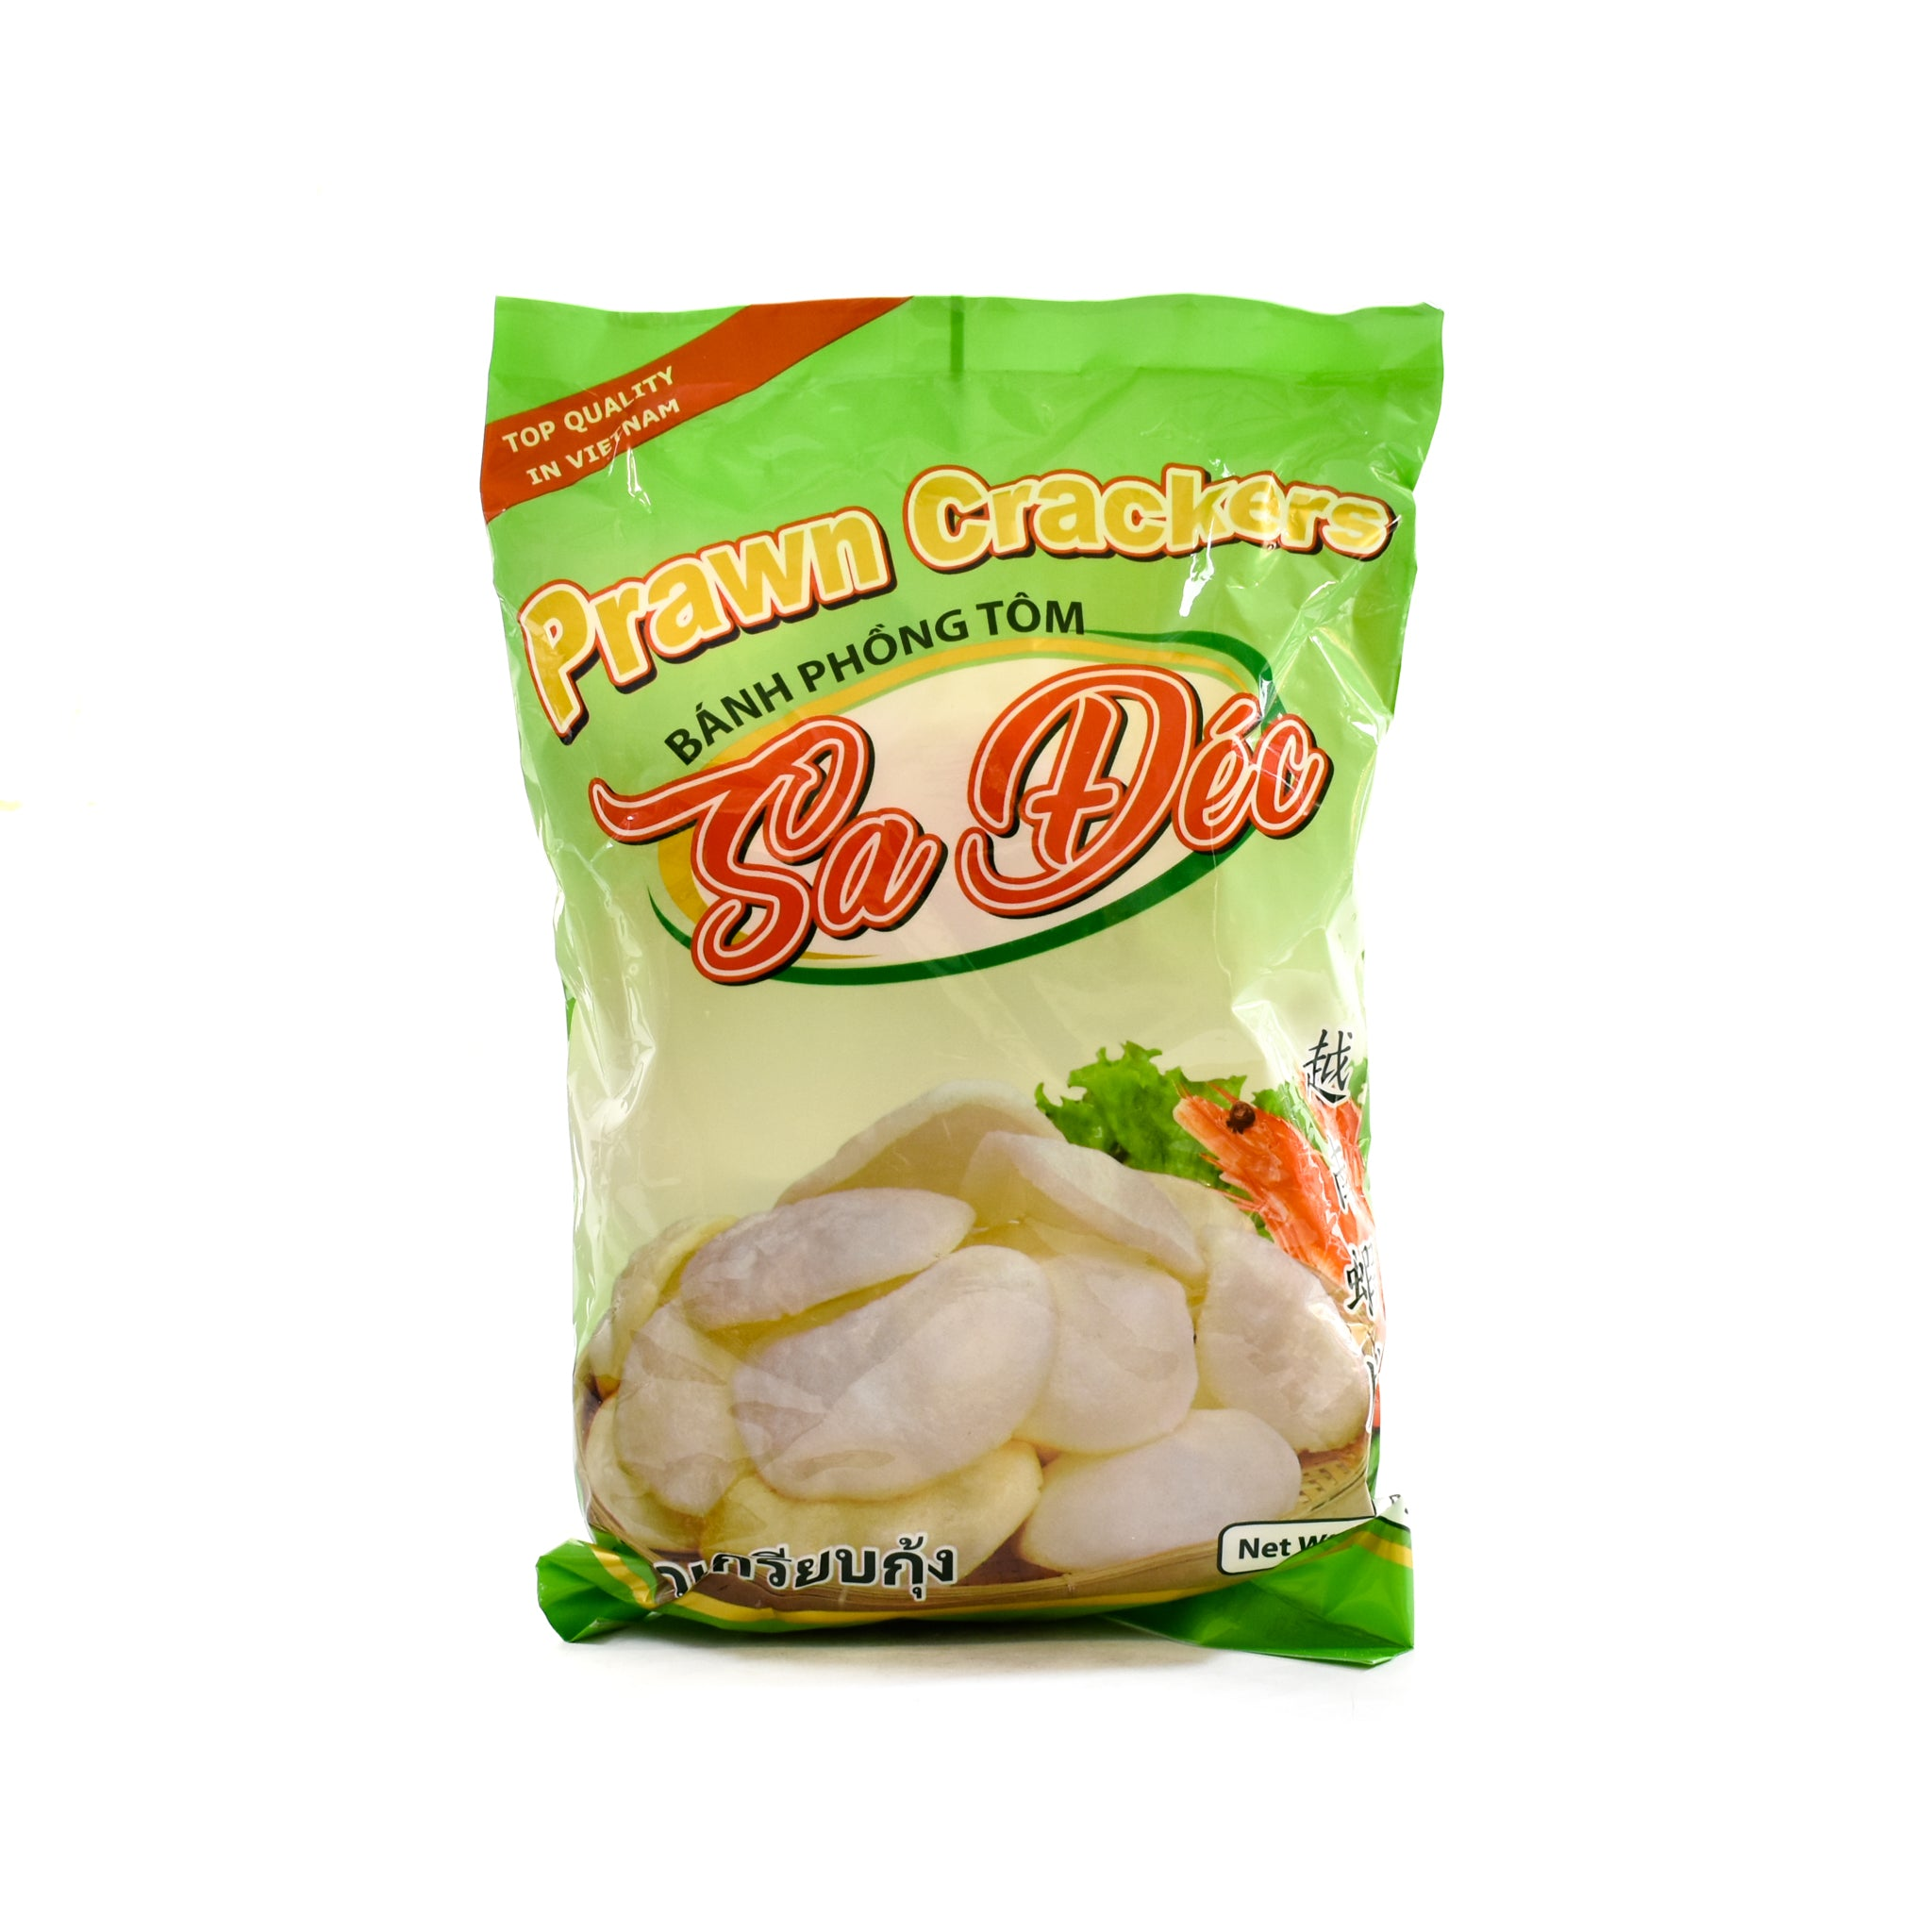 Sadec Prawn Crackers 500g Ingredients Savoury Snacks & Crackers Southeast Asian Food